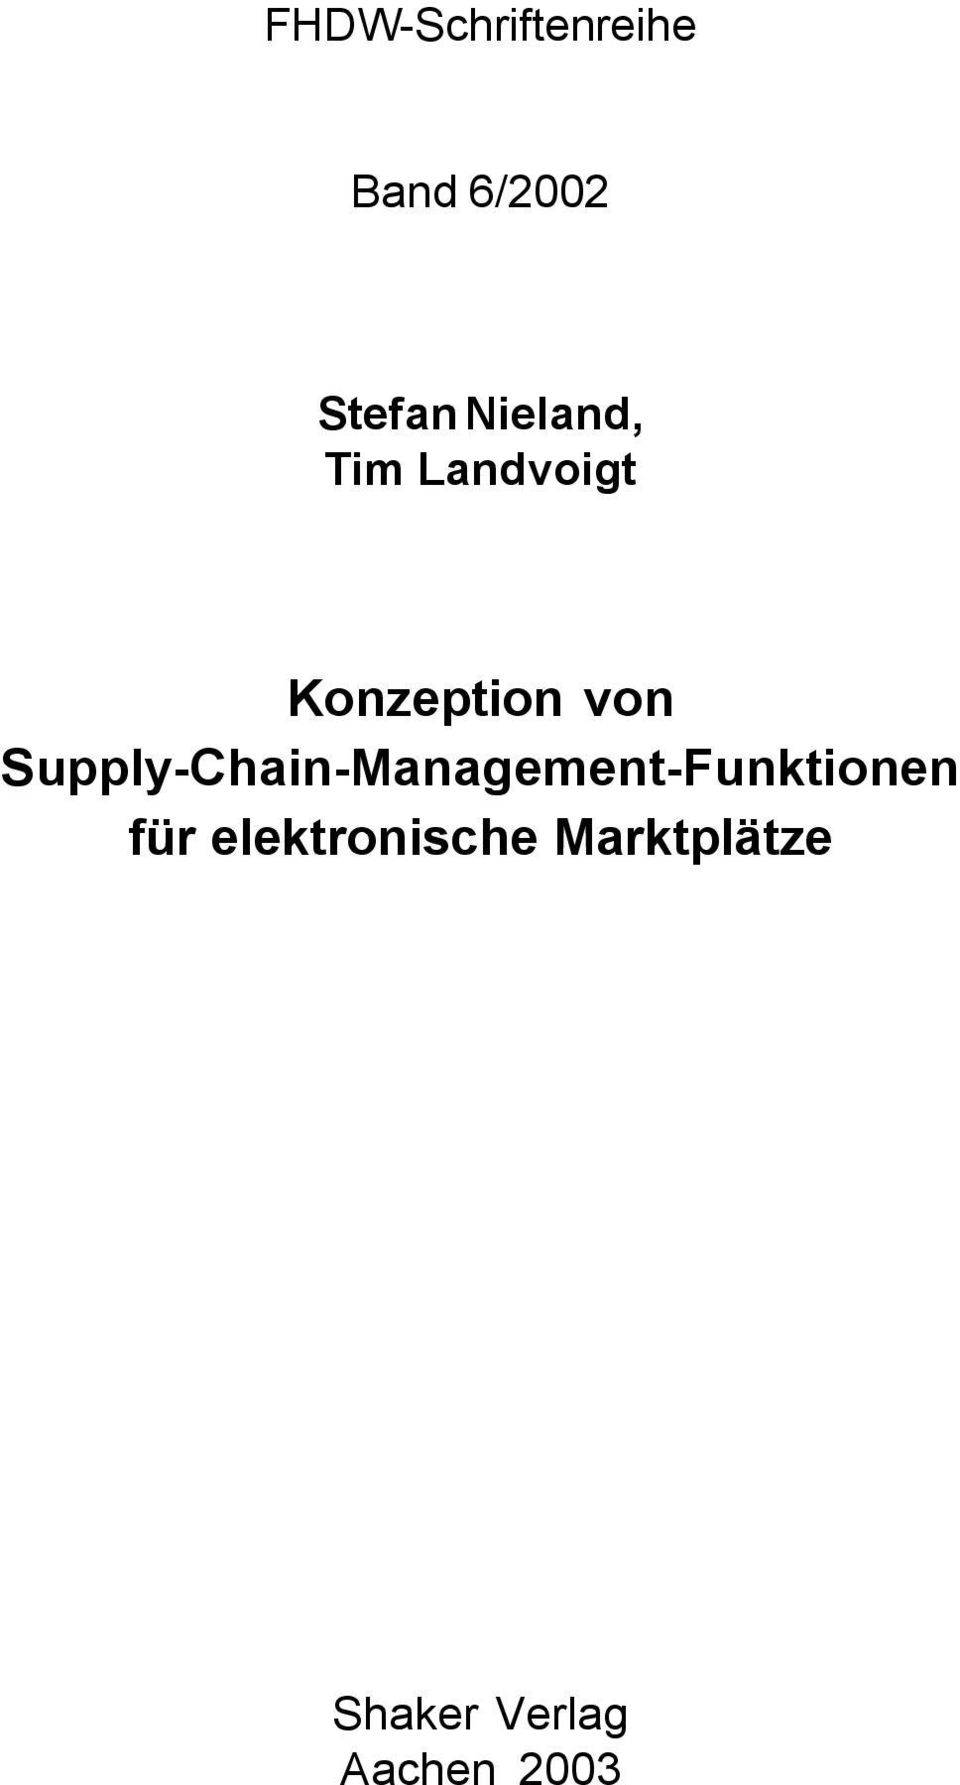 Supply-Chain-Management-Funktionen für